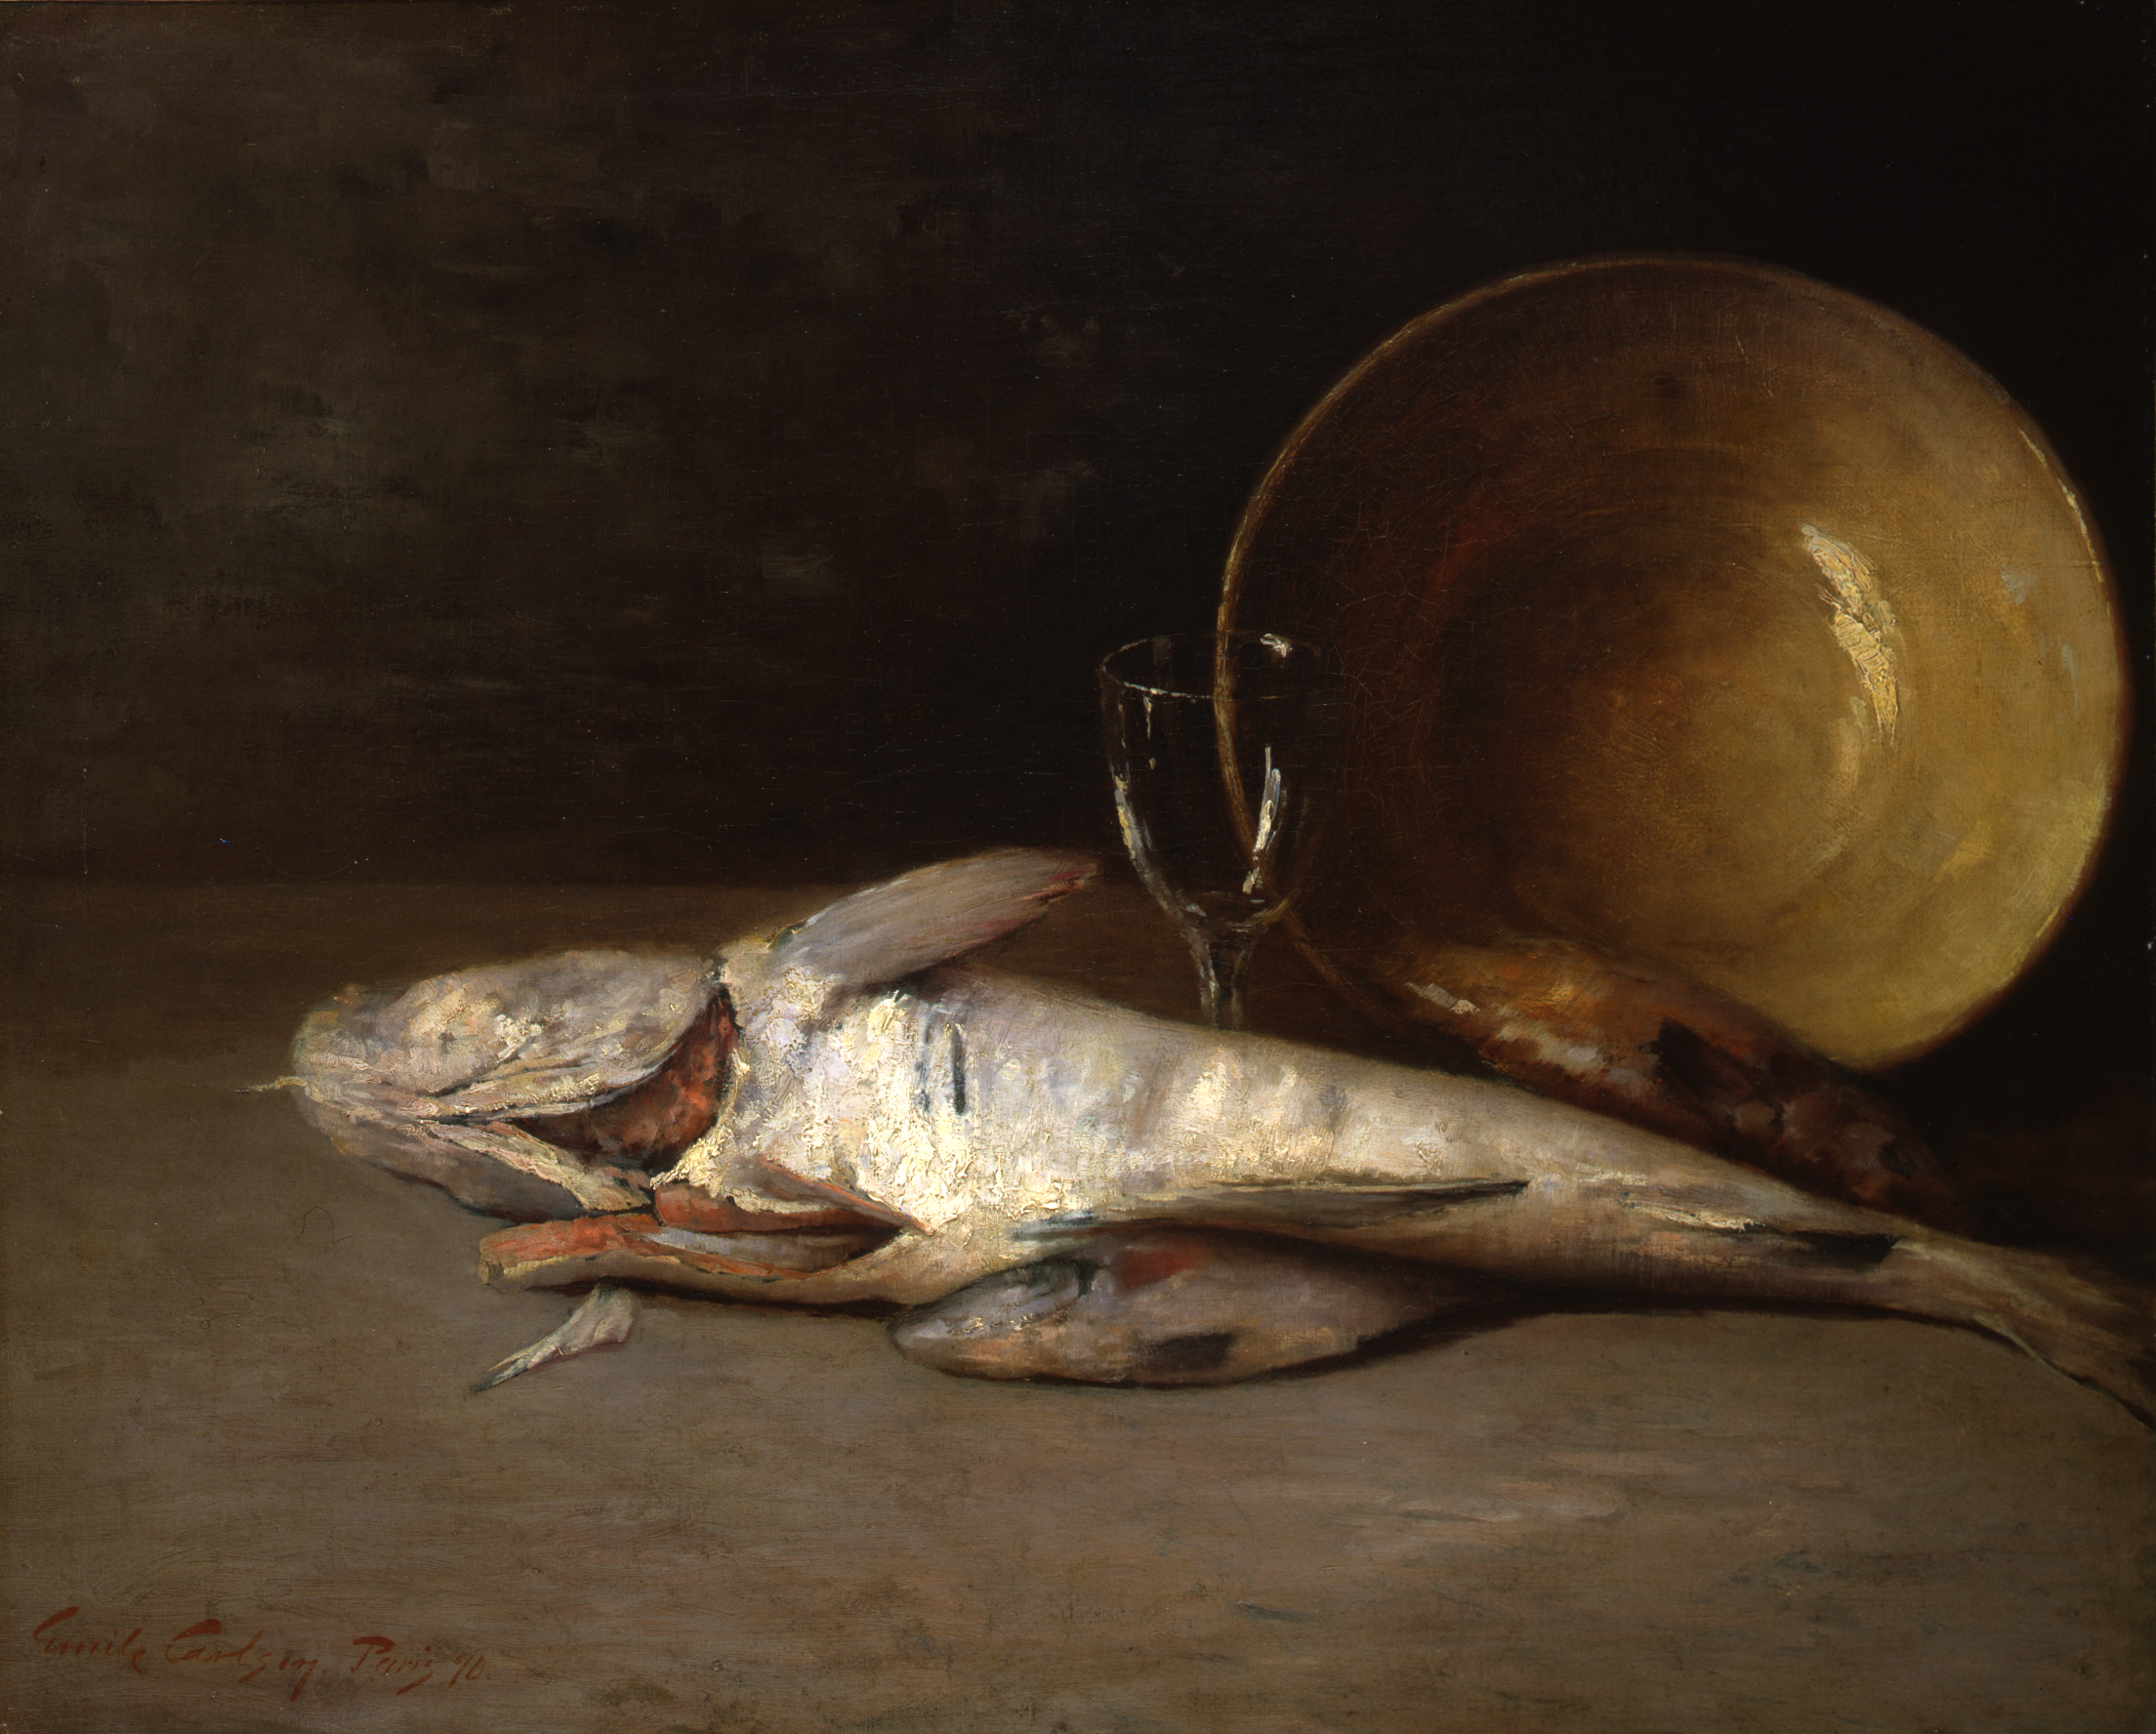 Emil Carlsen Fish And Copper Bowl 1890